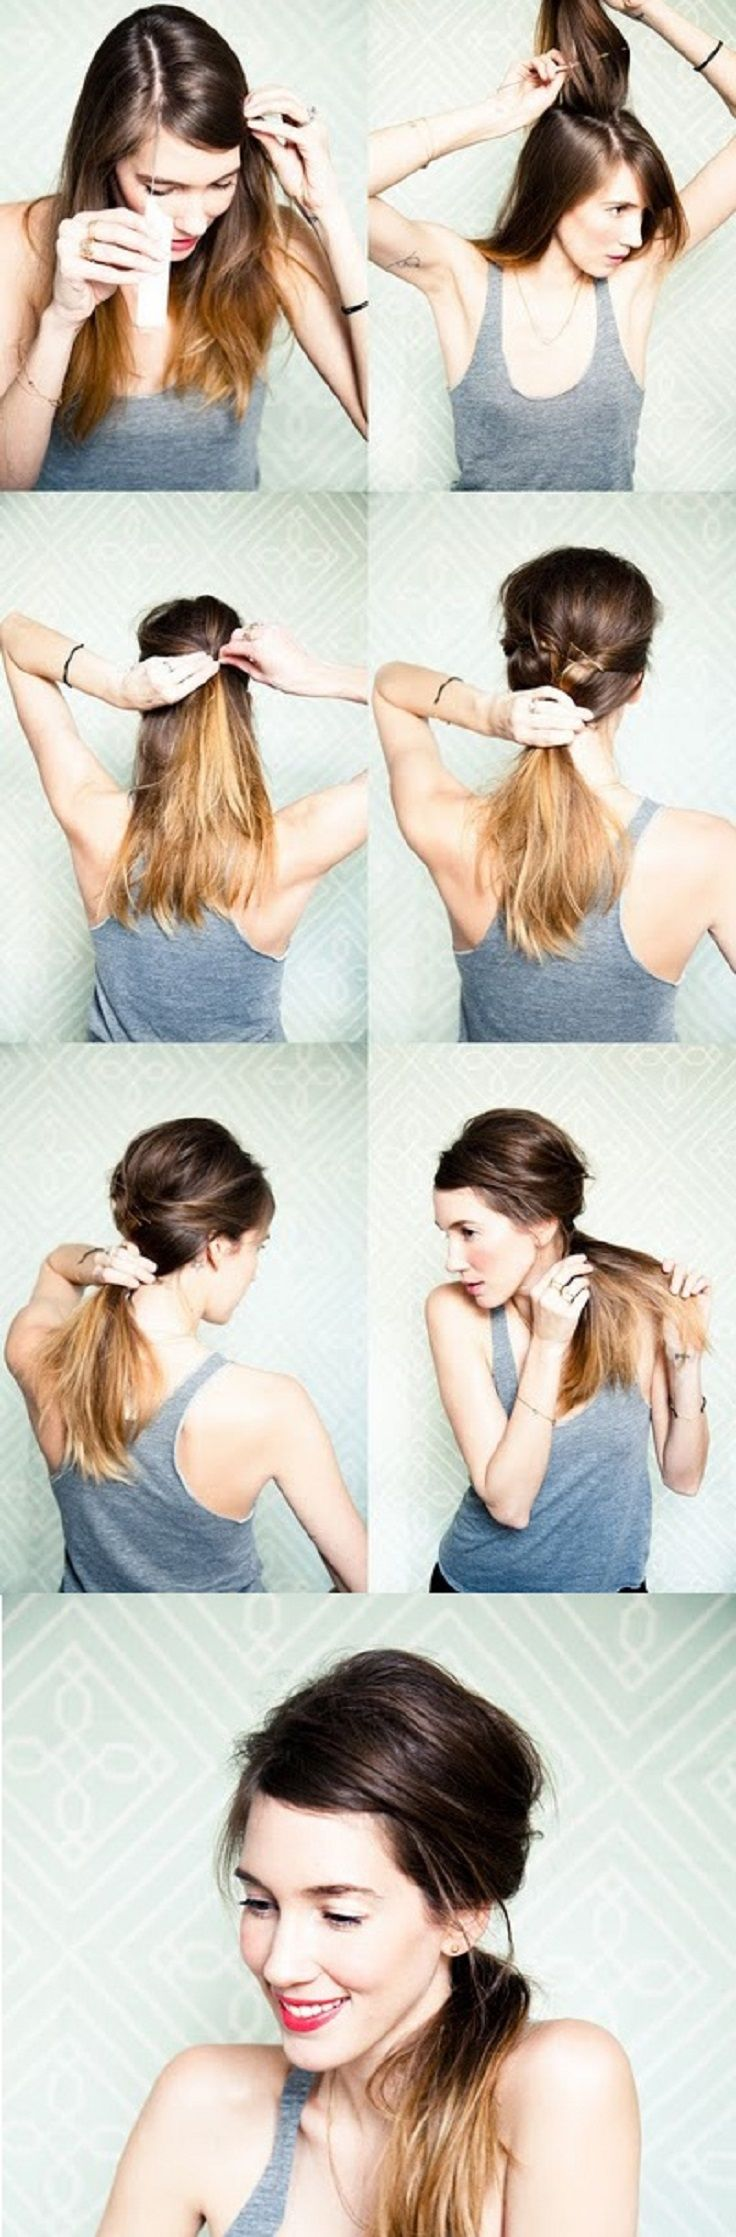 20 best Pony Hairstyles images on Pinterest | Hair dos, Pony tails ...